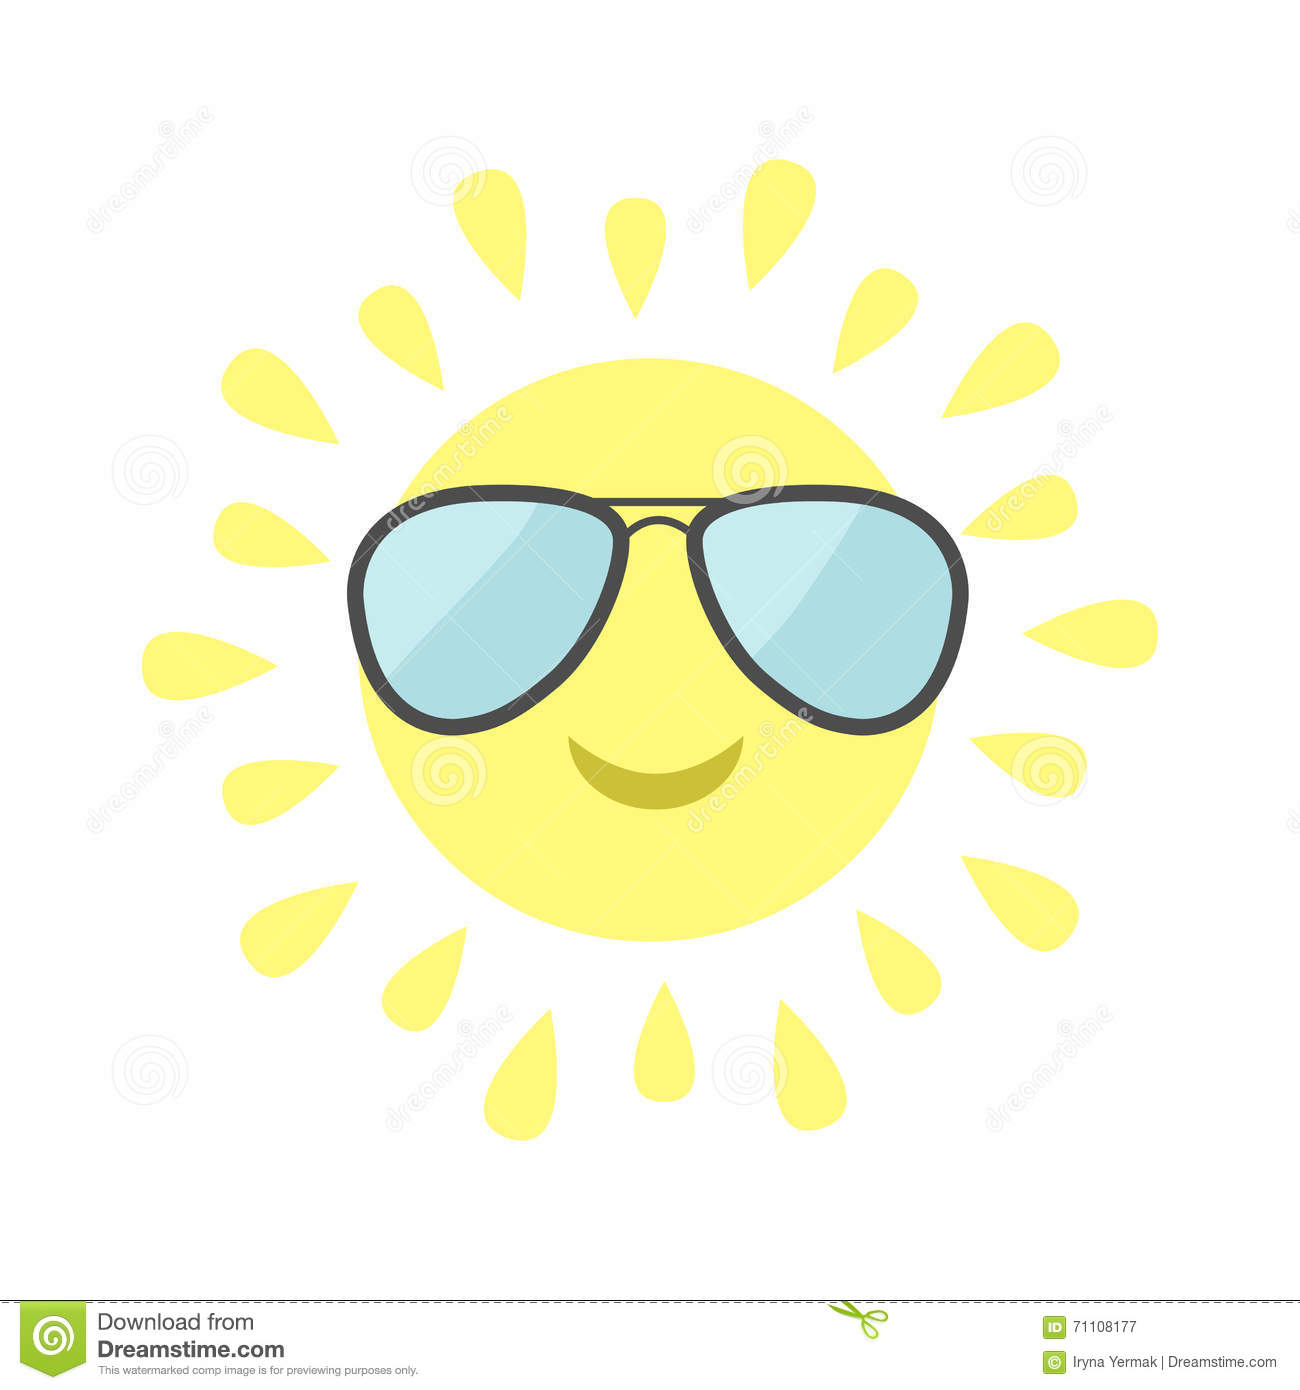 Attirant Sun Shining Icon. Sun Face With Pilot Sunglassess. Cute Cartoon Funny  Smiling Character. Hello Summer. White Background. Isolated.